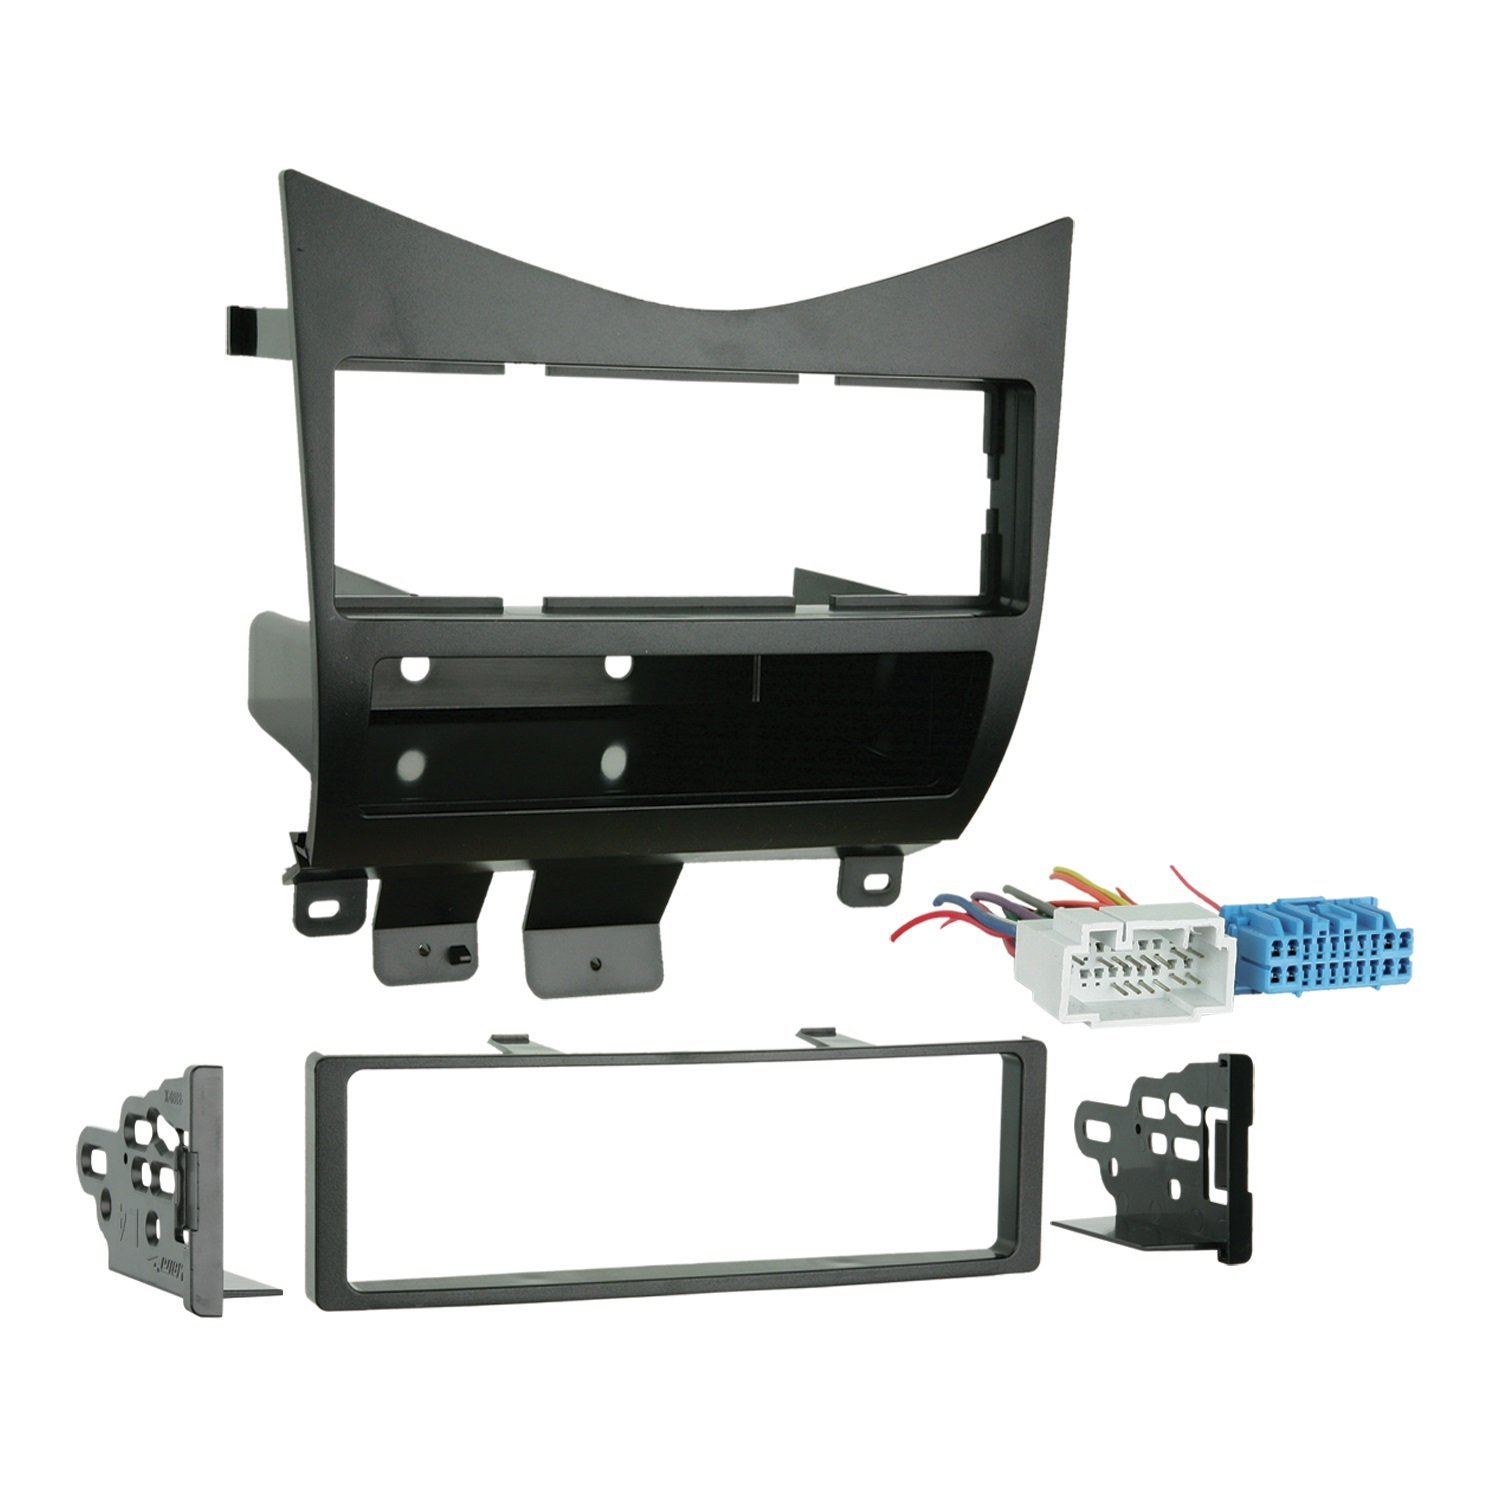 99 7862 Lower Dash Single Din Installation Kit For 2003 2004 Honda Metra Car Stereo Wire Harness Accord With Acurahondaisuzu Climate 20042008 Black Chrysler Vehicles By